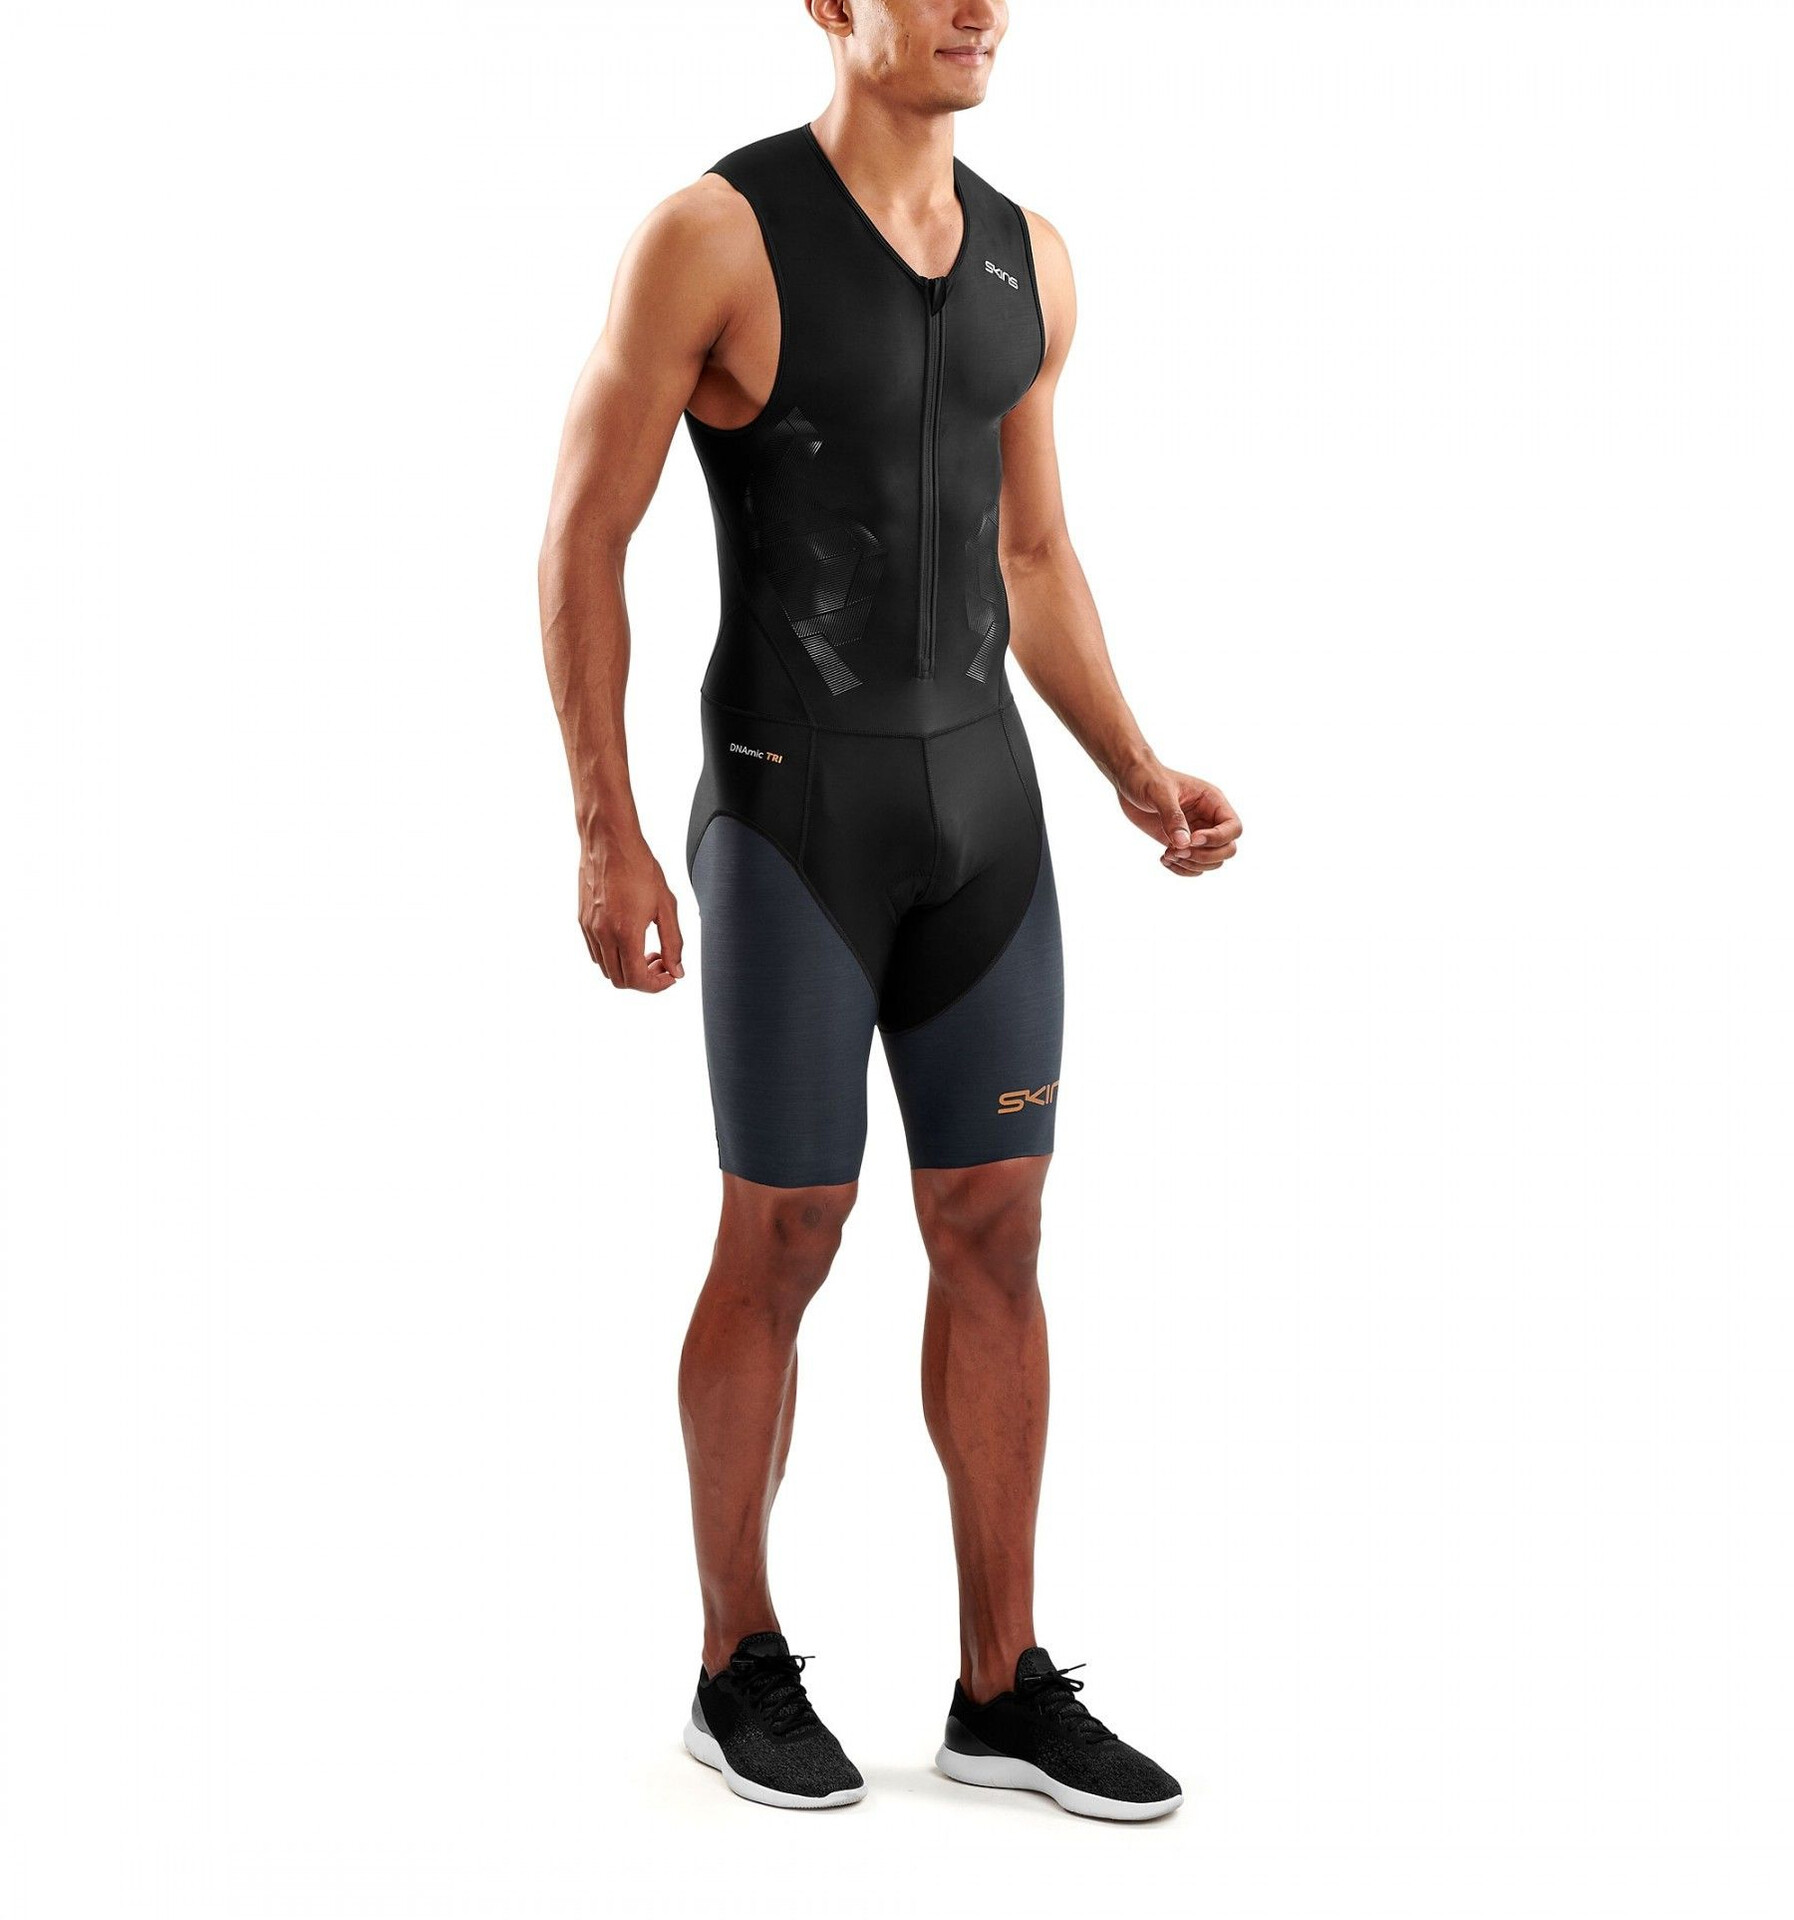 Skins DNAmic Triathlon Skinsuit with Front Zip Damer, blackcarbon